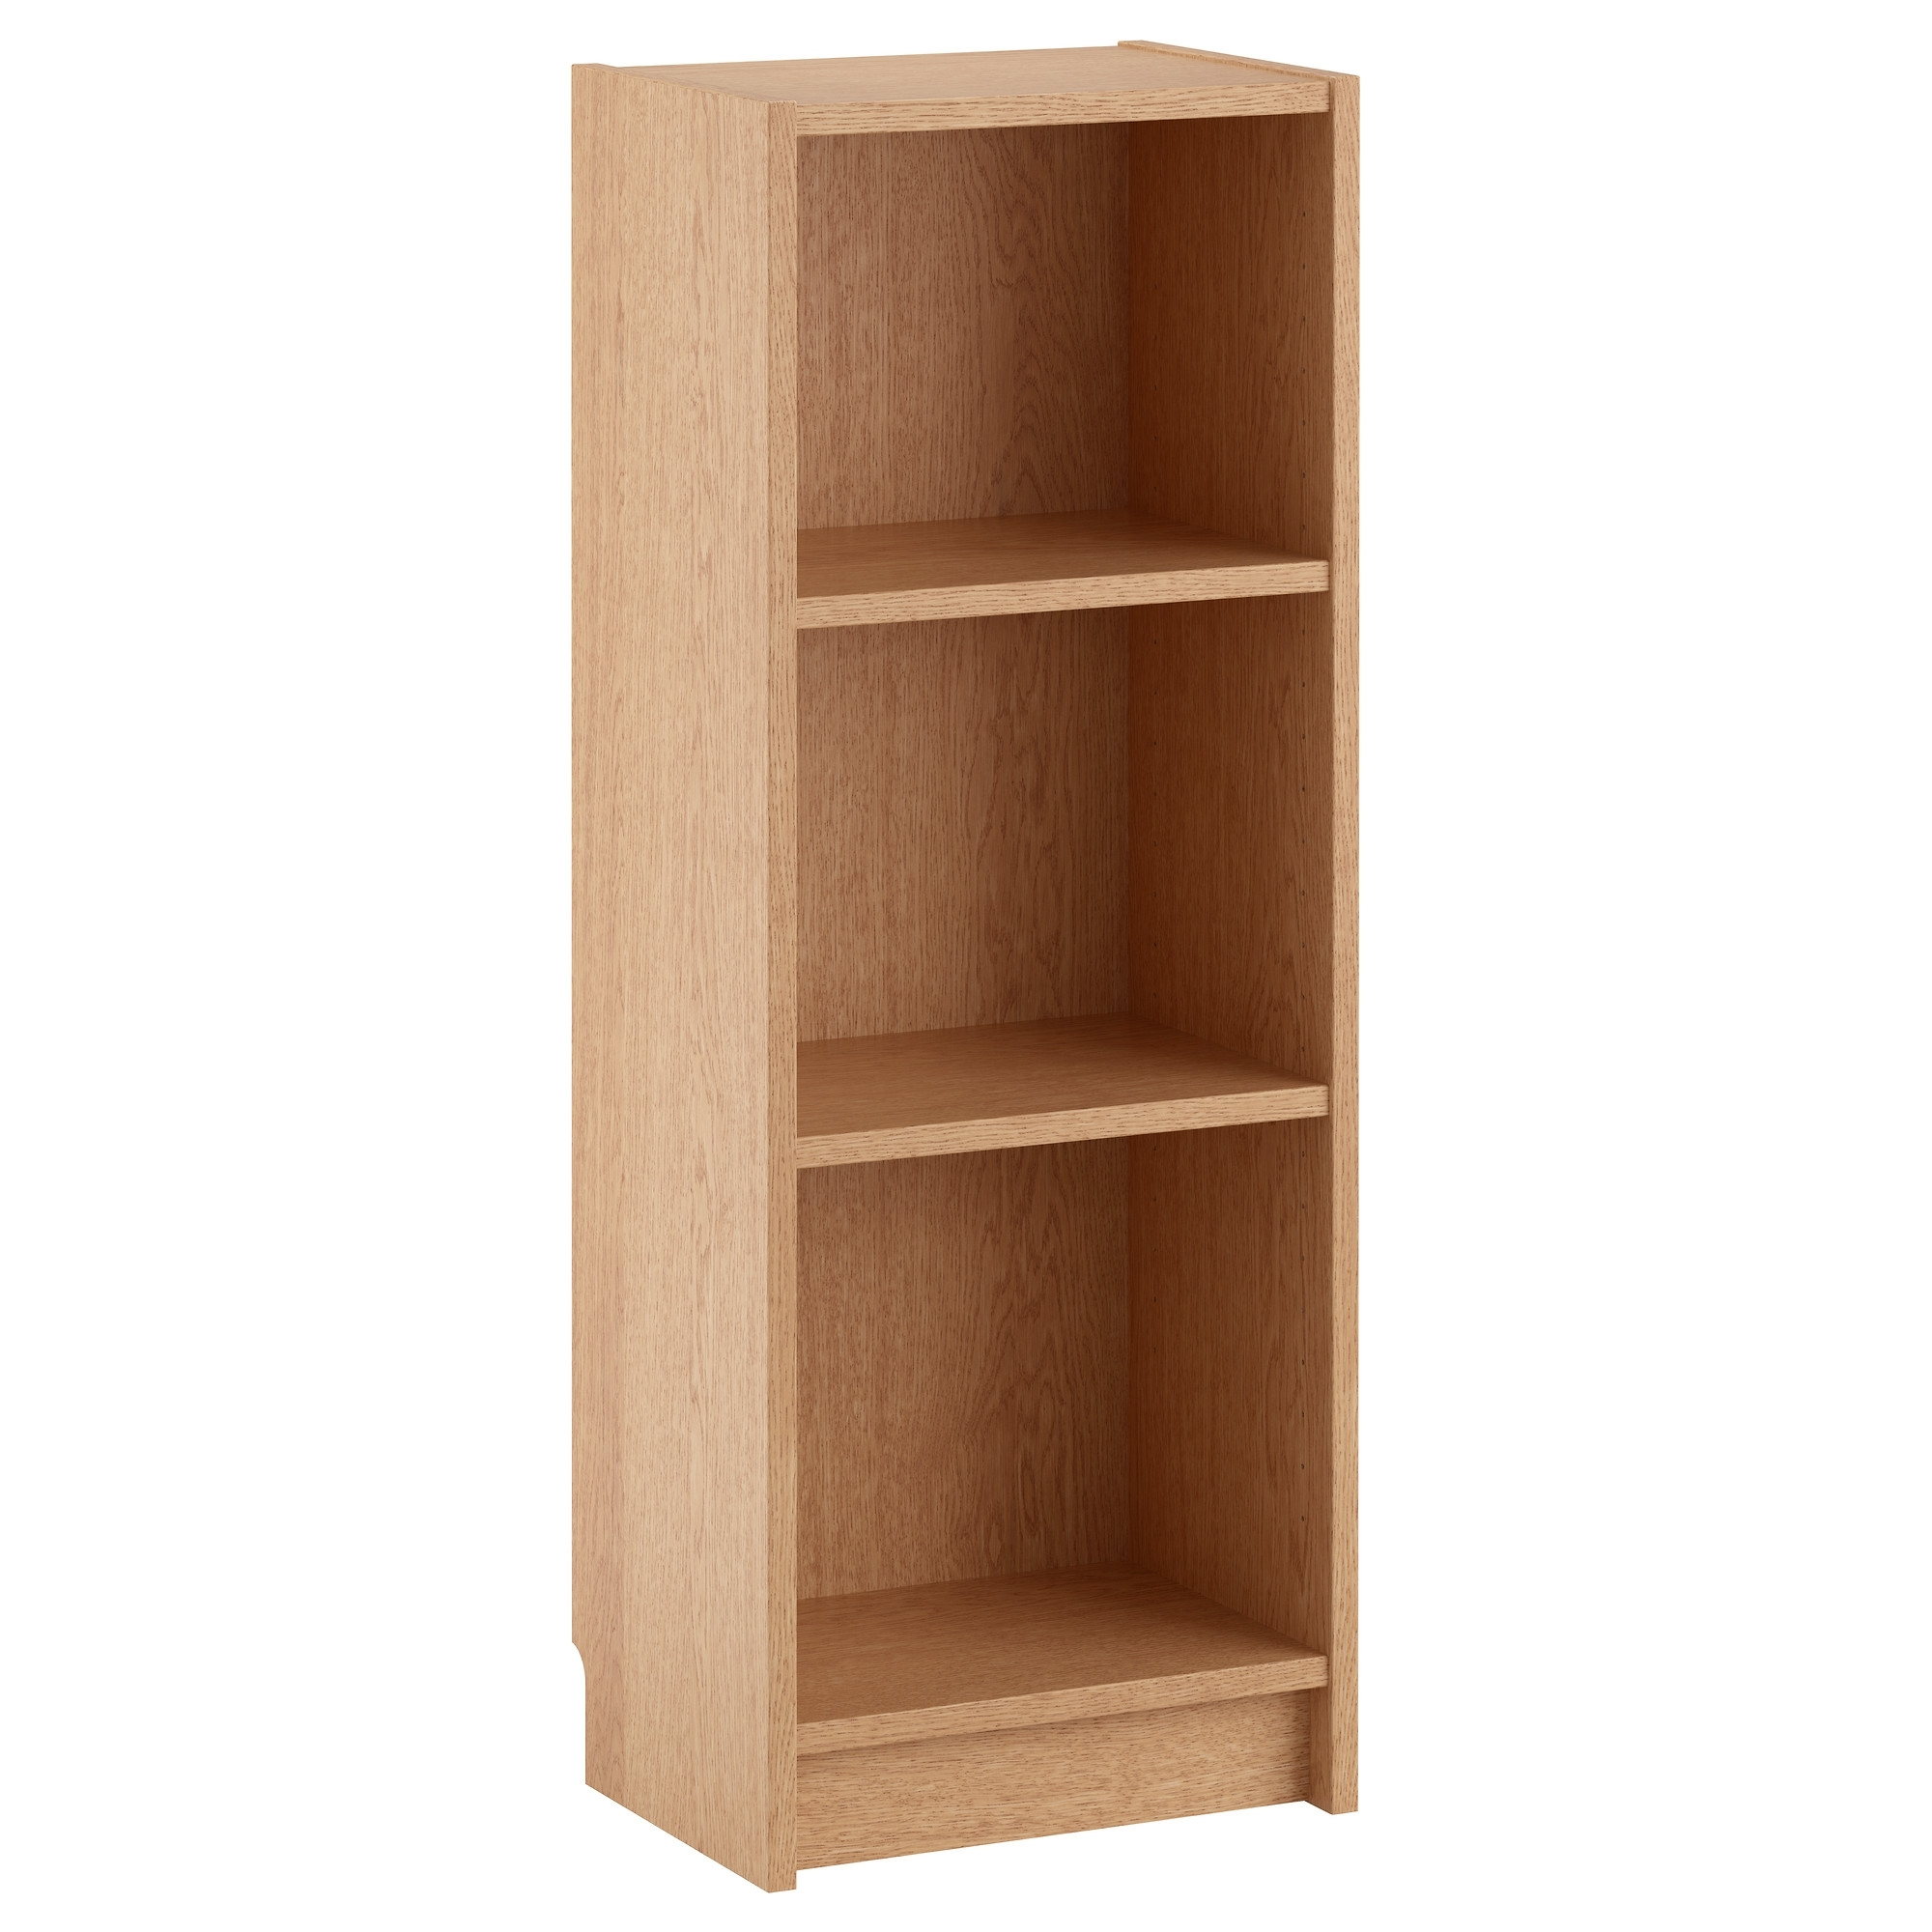 Flat Pack Bookcases Regarding 2018 Bookcases & Bookshelves (View 7 of 15)